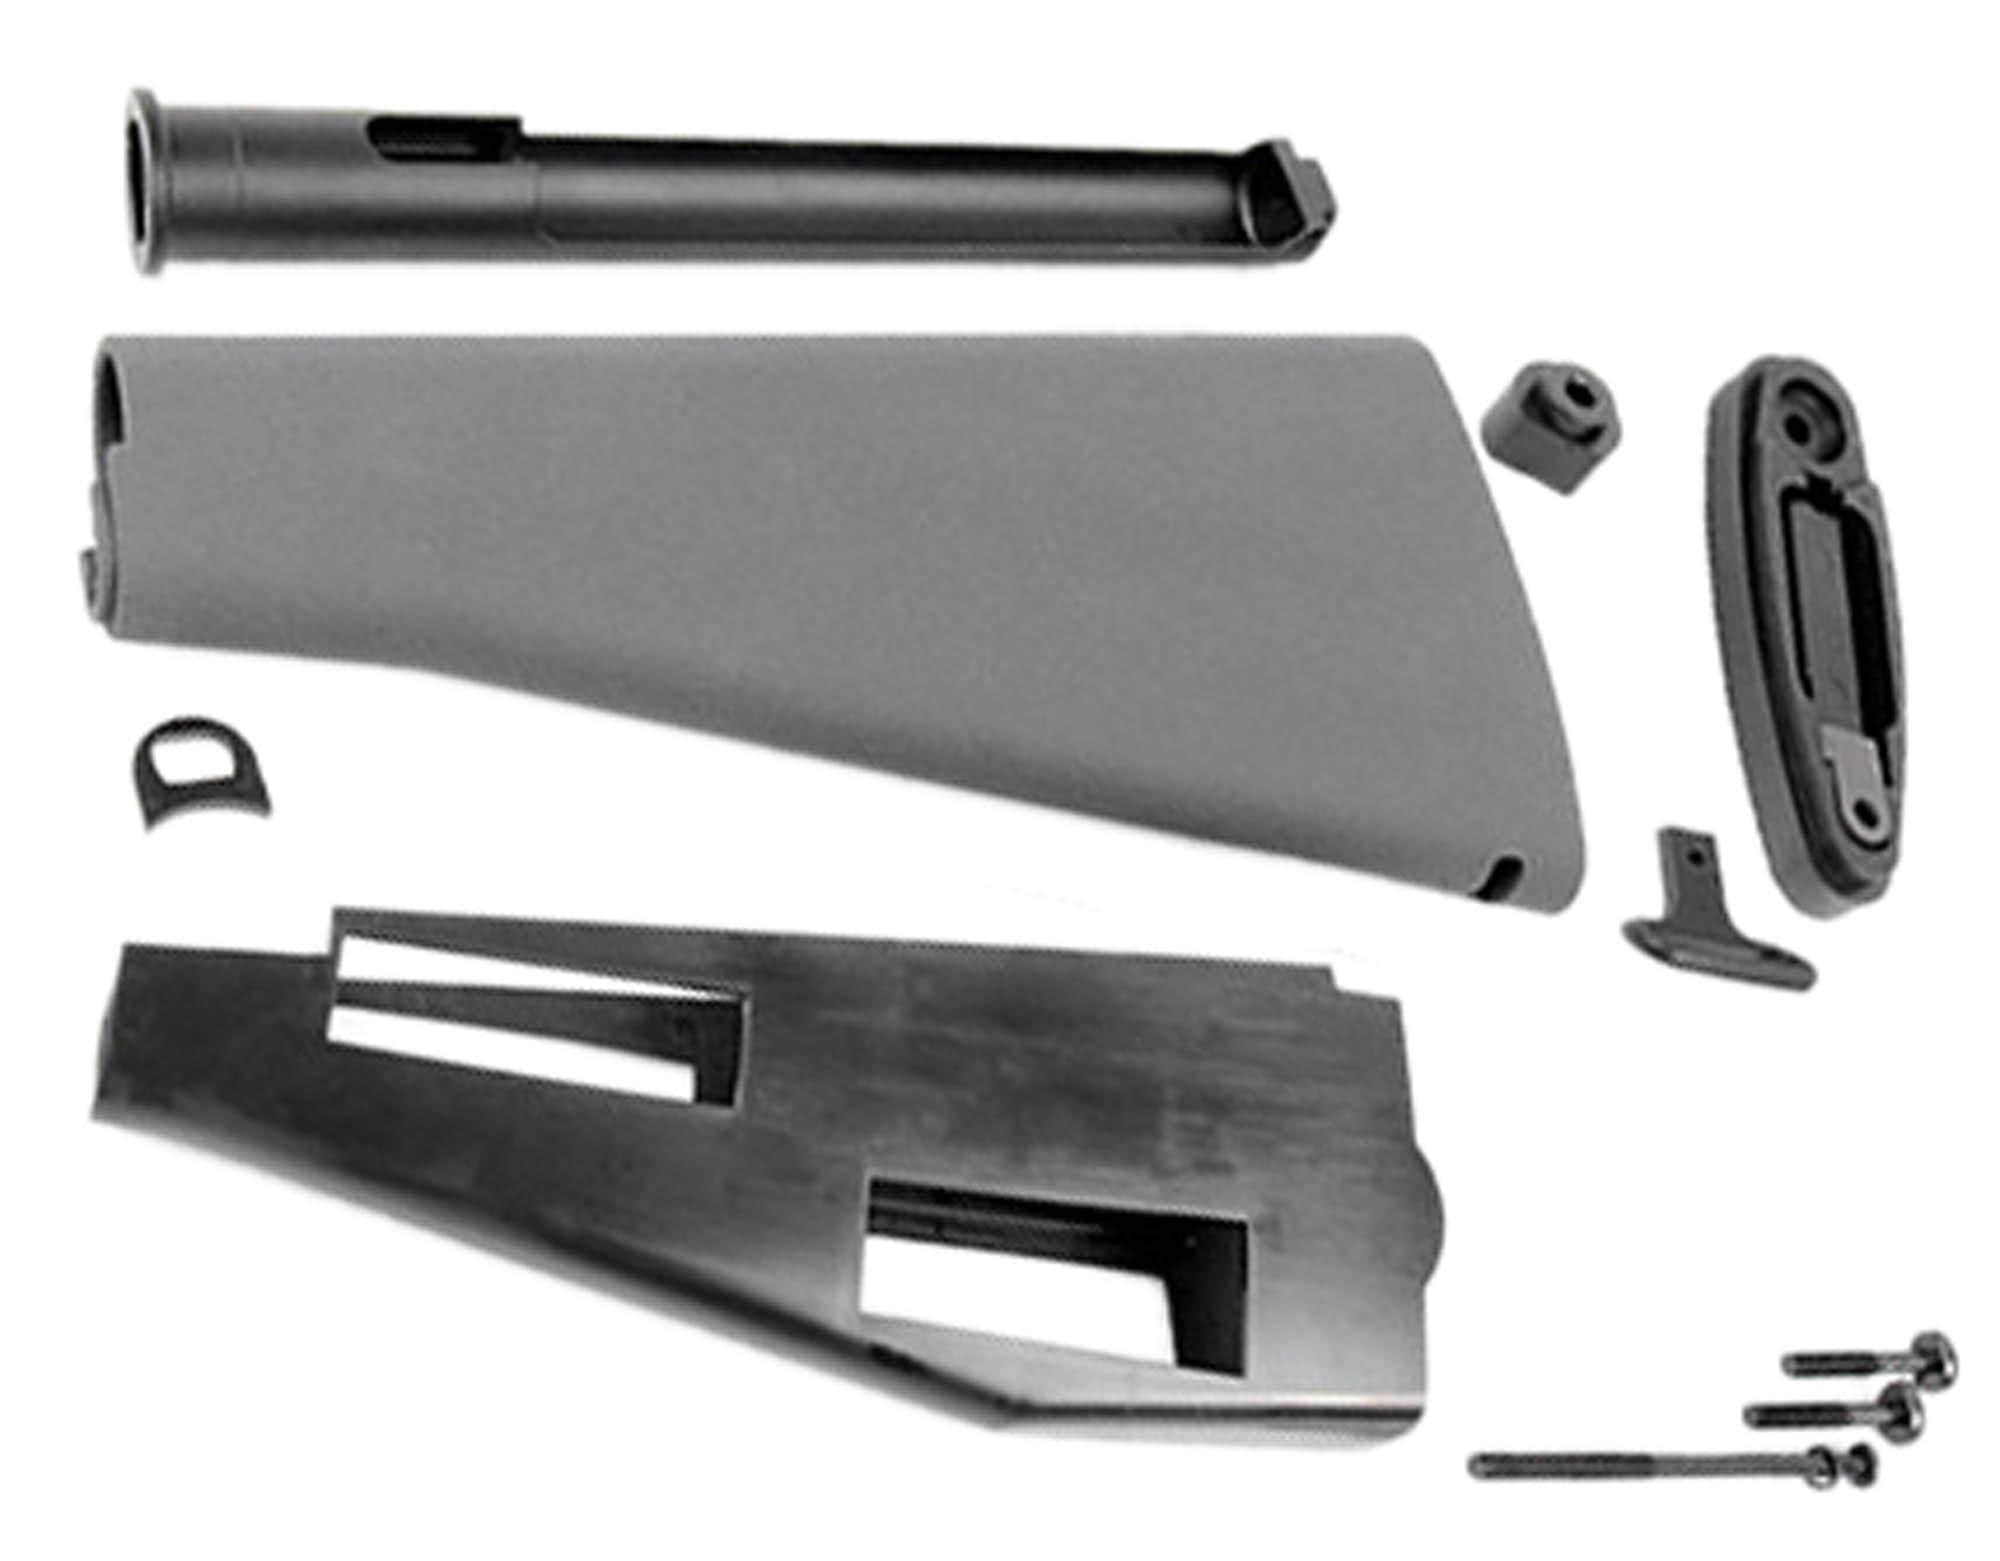 A60578-1-Duplica Crosse fixe + tube pour M4 / M16 Grey - KING ARMS - A60578